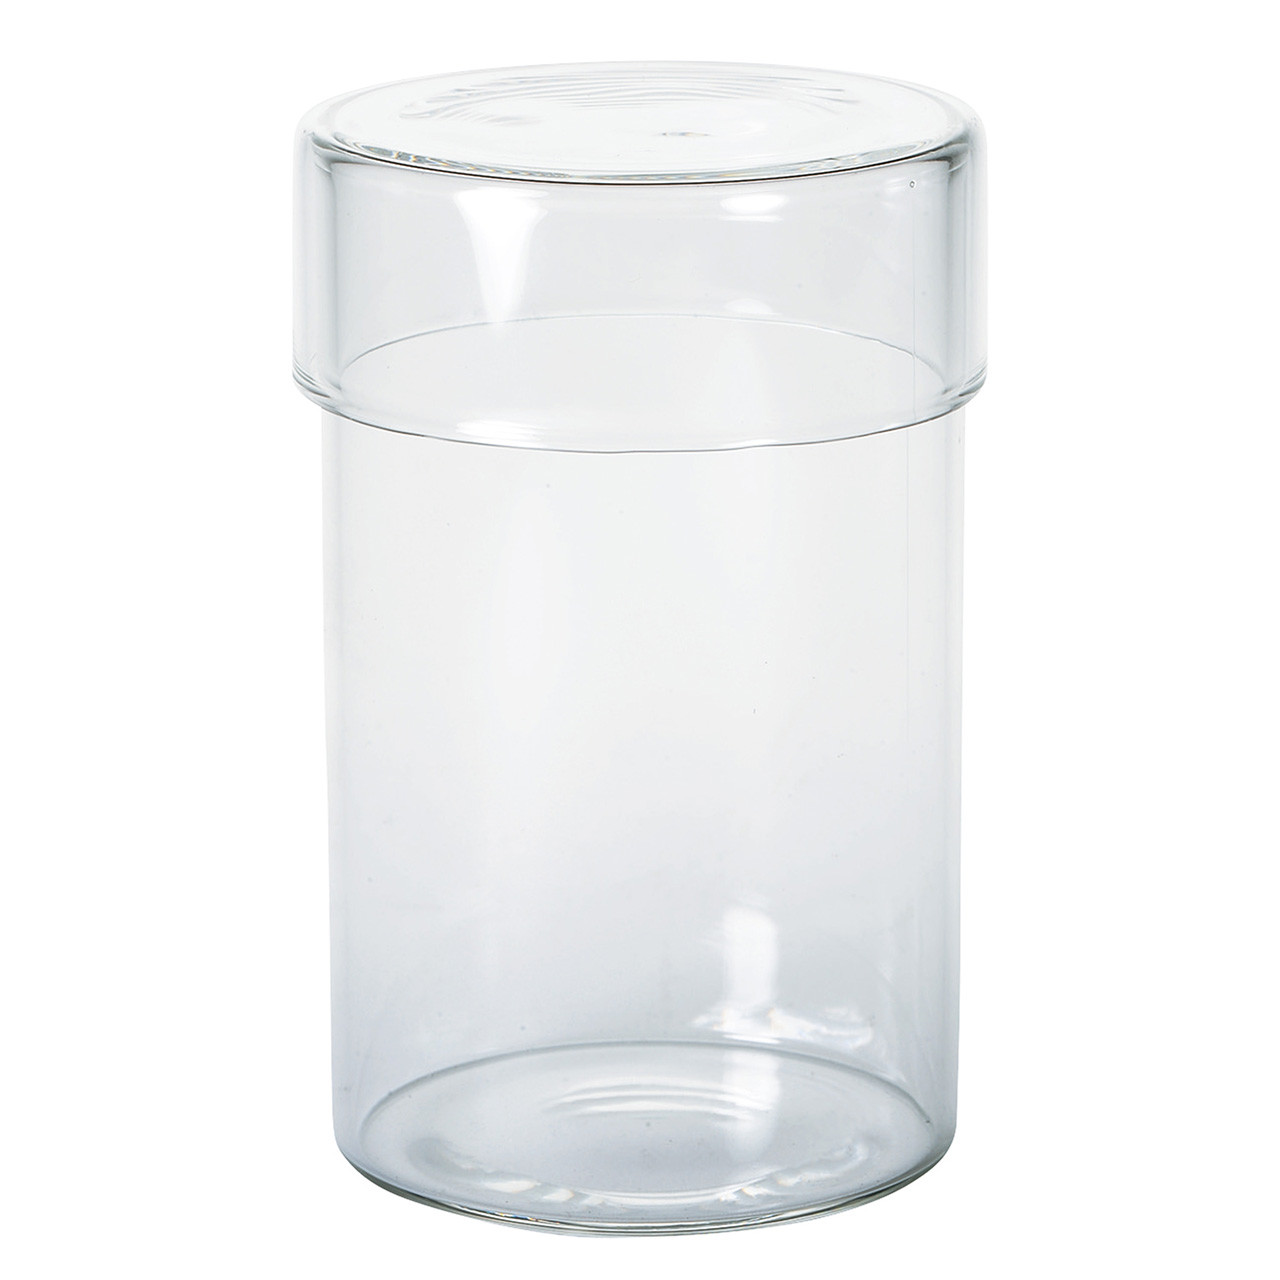 Glass Round Flower Vase Flower Vase Import Japanese Products At Wholesale Prices Super Delivery